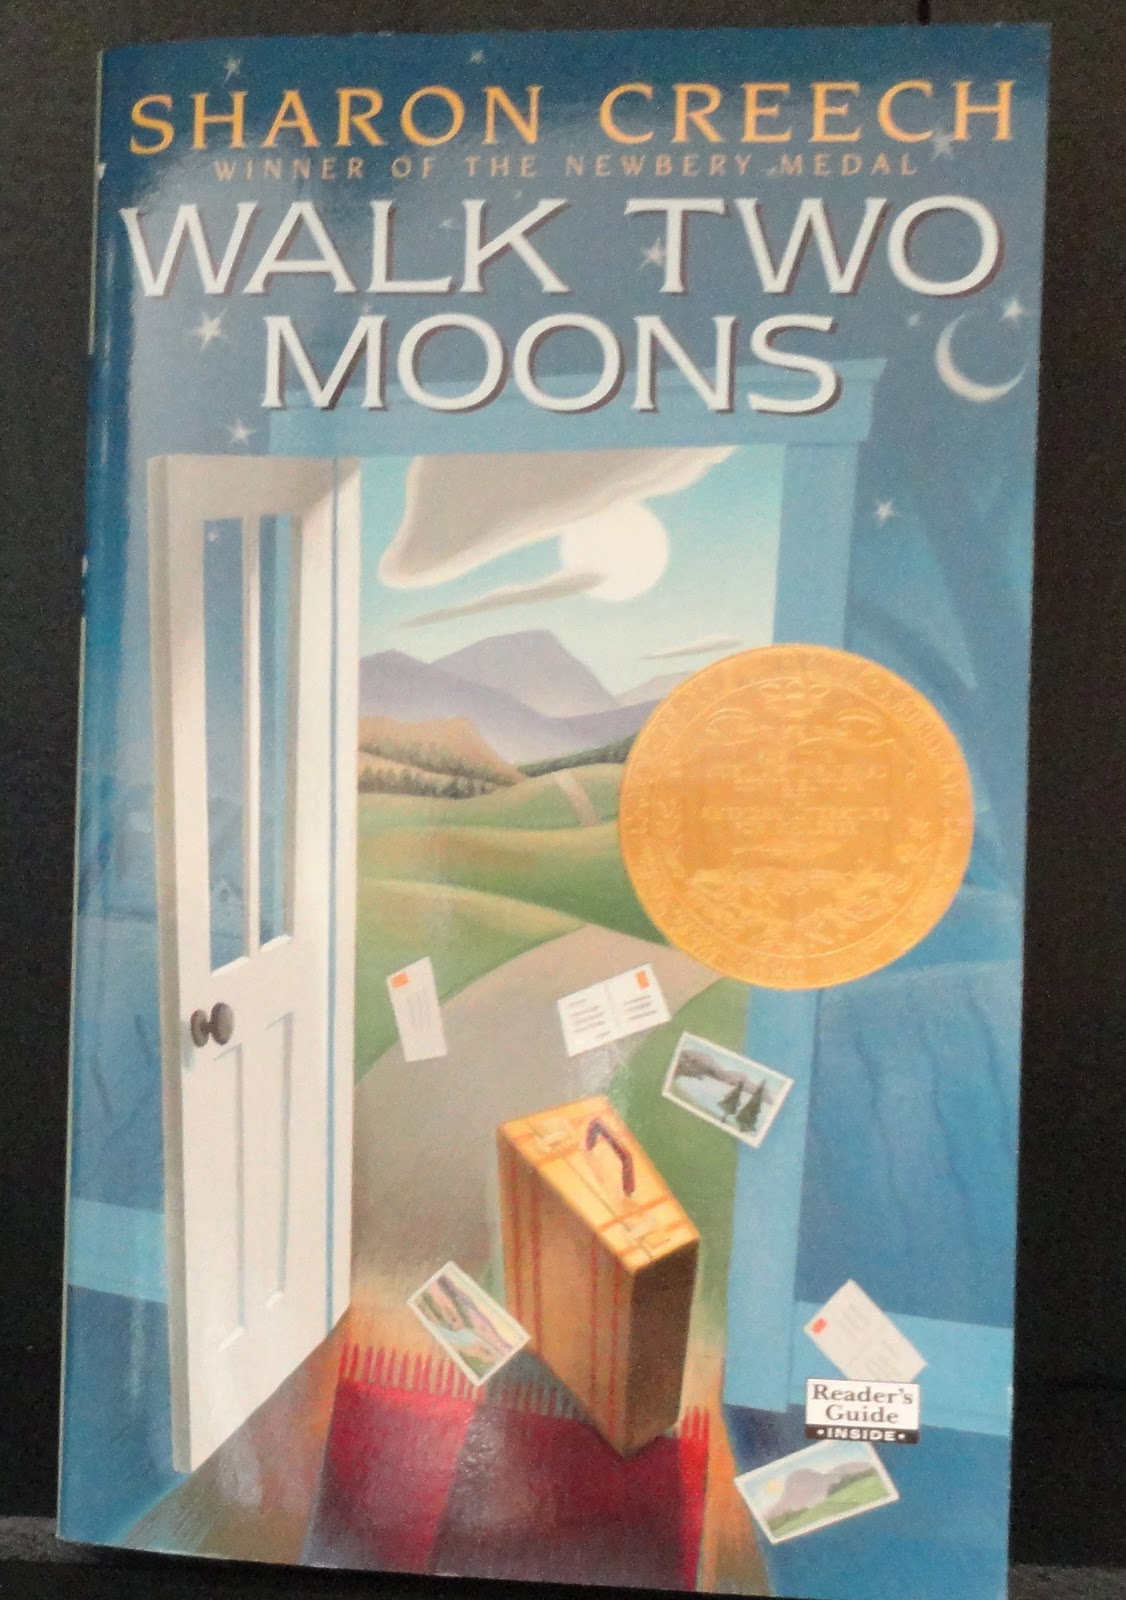 essays on sharon creech Read the moon free essay and over 88,000 other research documents the moon the moon, of course two moons by sharon creech.